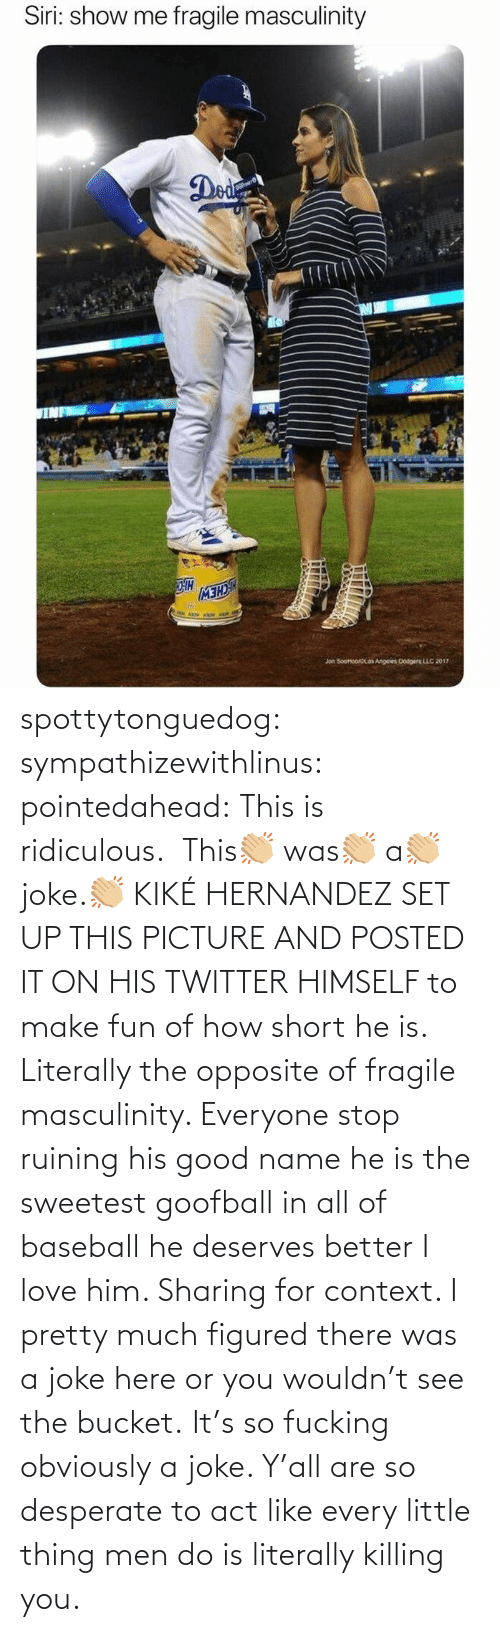 much: spottytonguedog:  sympathizewithlinus:   pointedahead: This is ridiculous.  This👏🏼 was👏🏼 a👏🏼 joke.👏🏼 KIKÉ HERNANDEZ SET UP THIS PICTURE AND POSTED IT ON HIS TWITTER HIMSELF to make fun of how short he is. Literally the opposite of fragile masculinity. Everyone stop ruining his good name he is the sweetest goofball in all of baseball he deserves better I love him.    Sharing for context. I pretty much figured there was a joke here or you wouldn't see the bucket.    It's so fucking obviously a joke. Y'all are so desperate to act like every little thing men do is literally killing you.